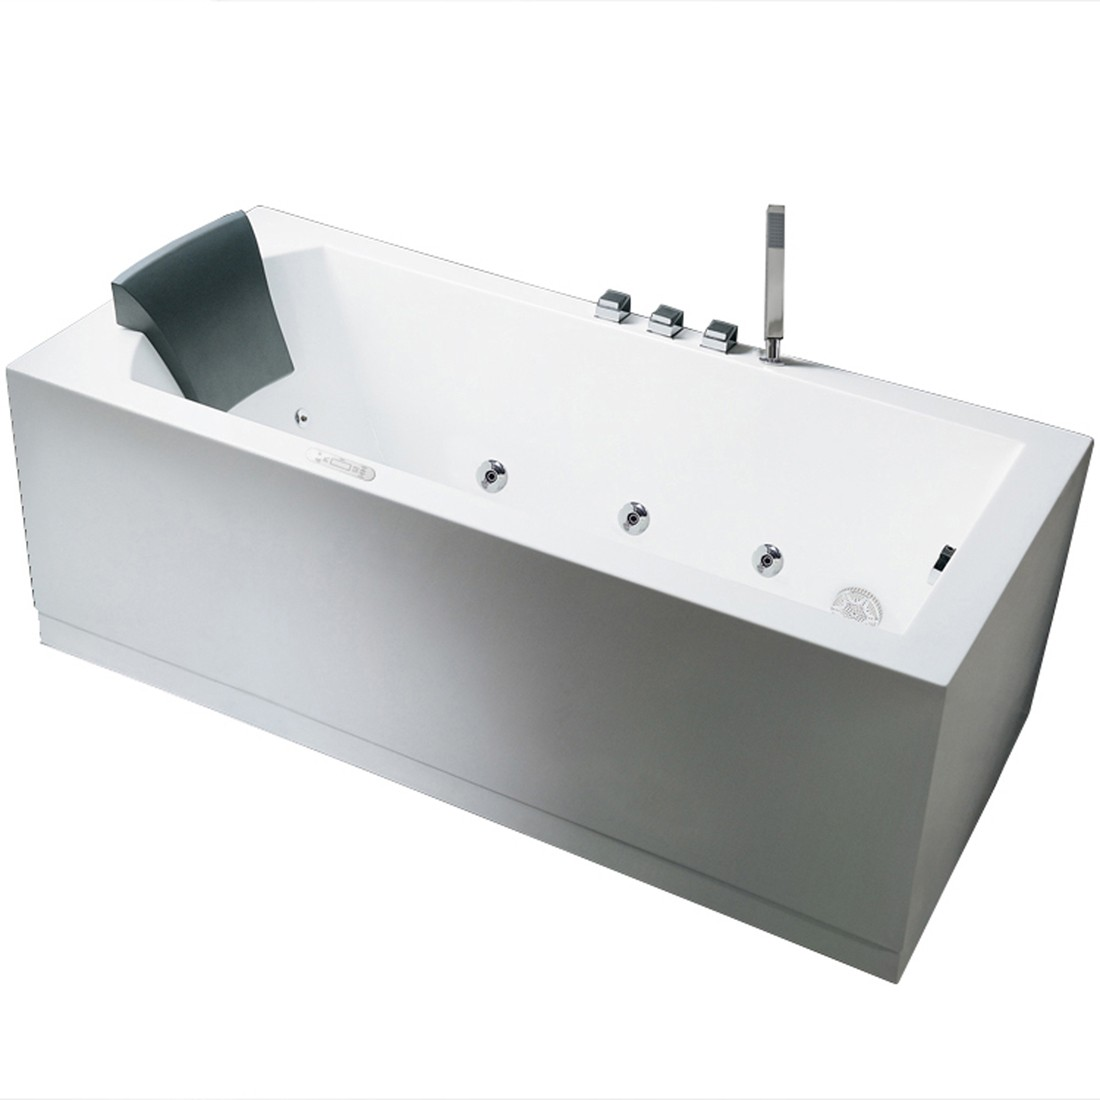 Ariel Bath AM154JDTSZ-R-59 Platinum Whirlpool Bathtub - 59\